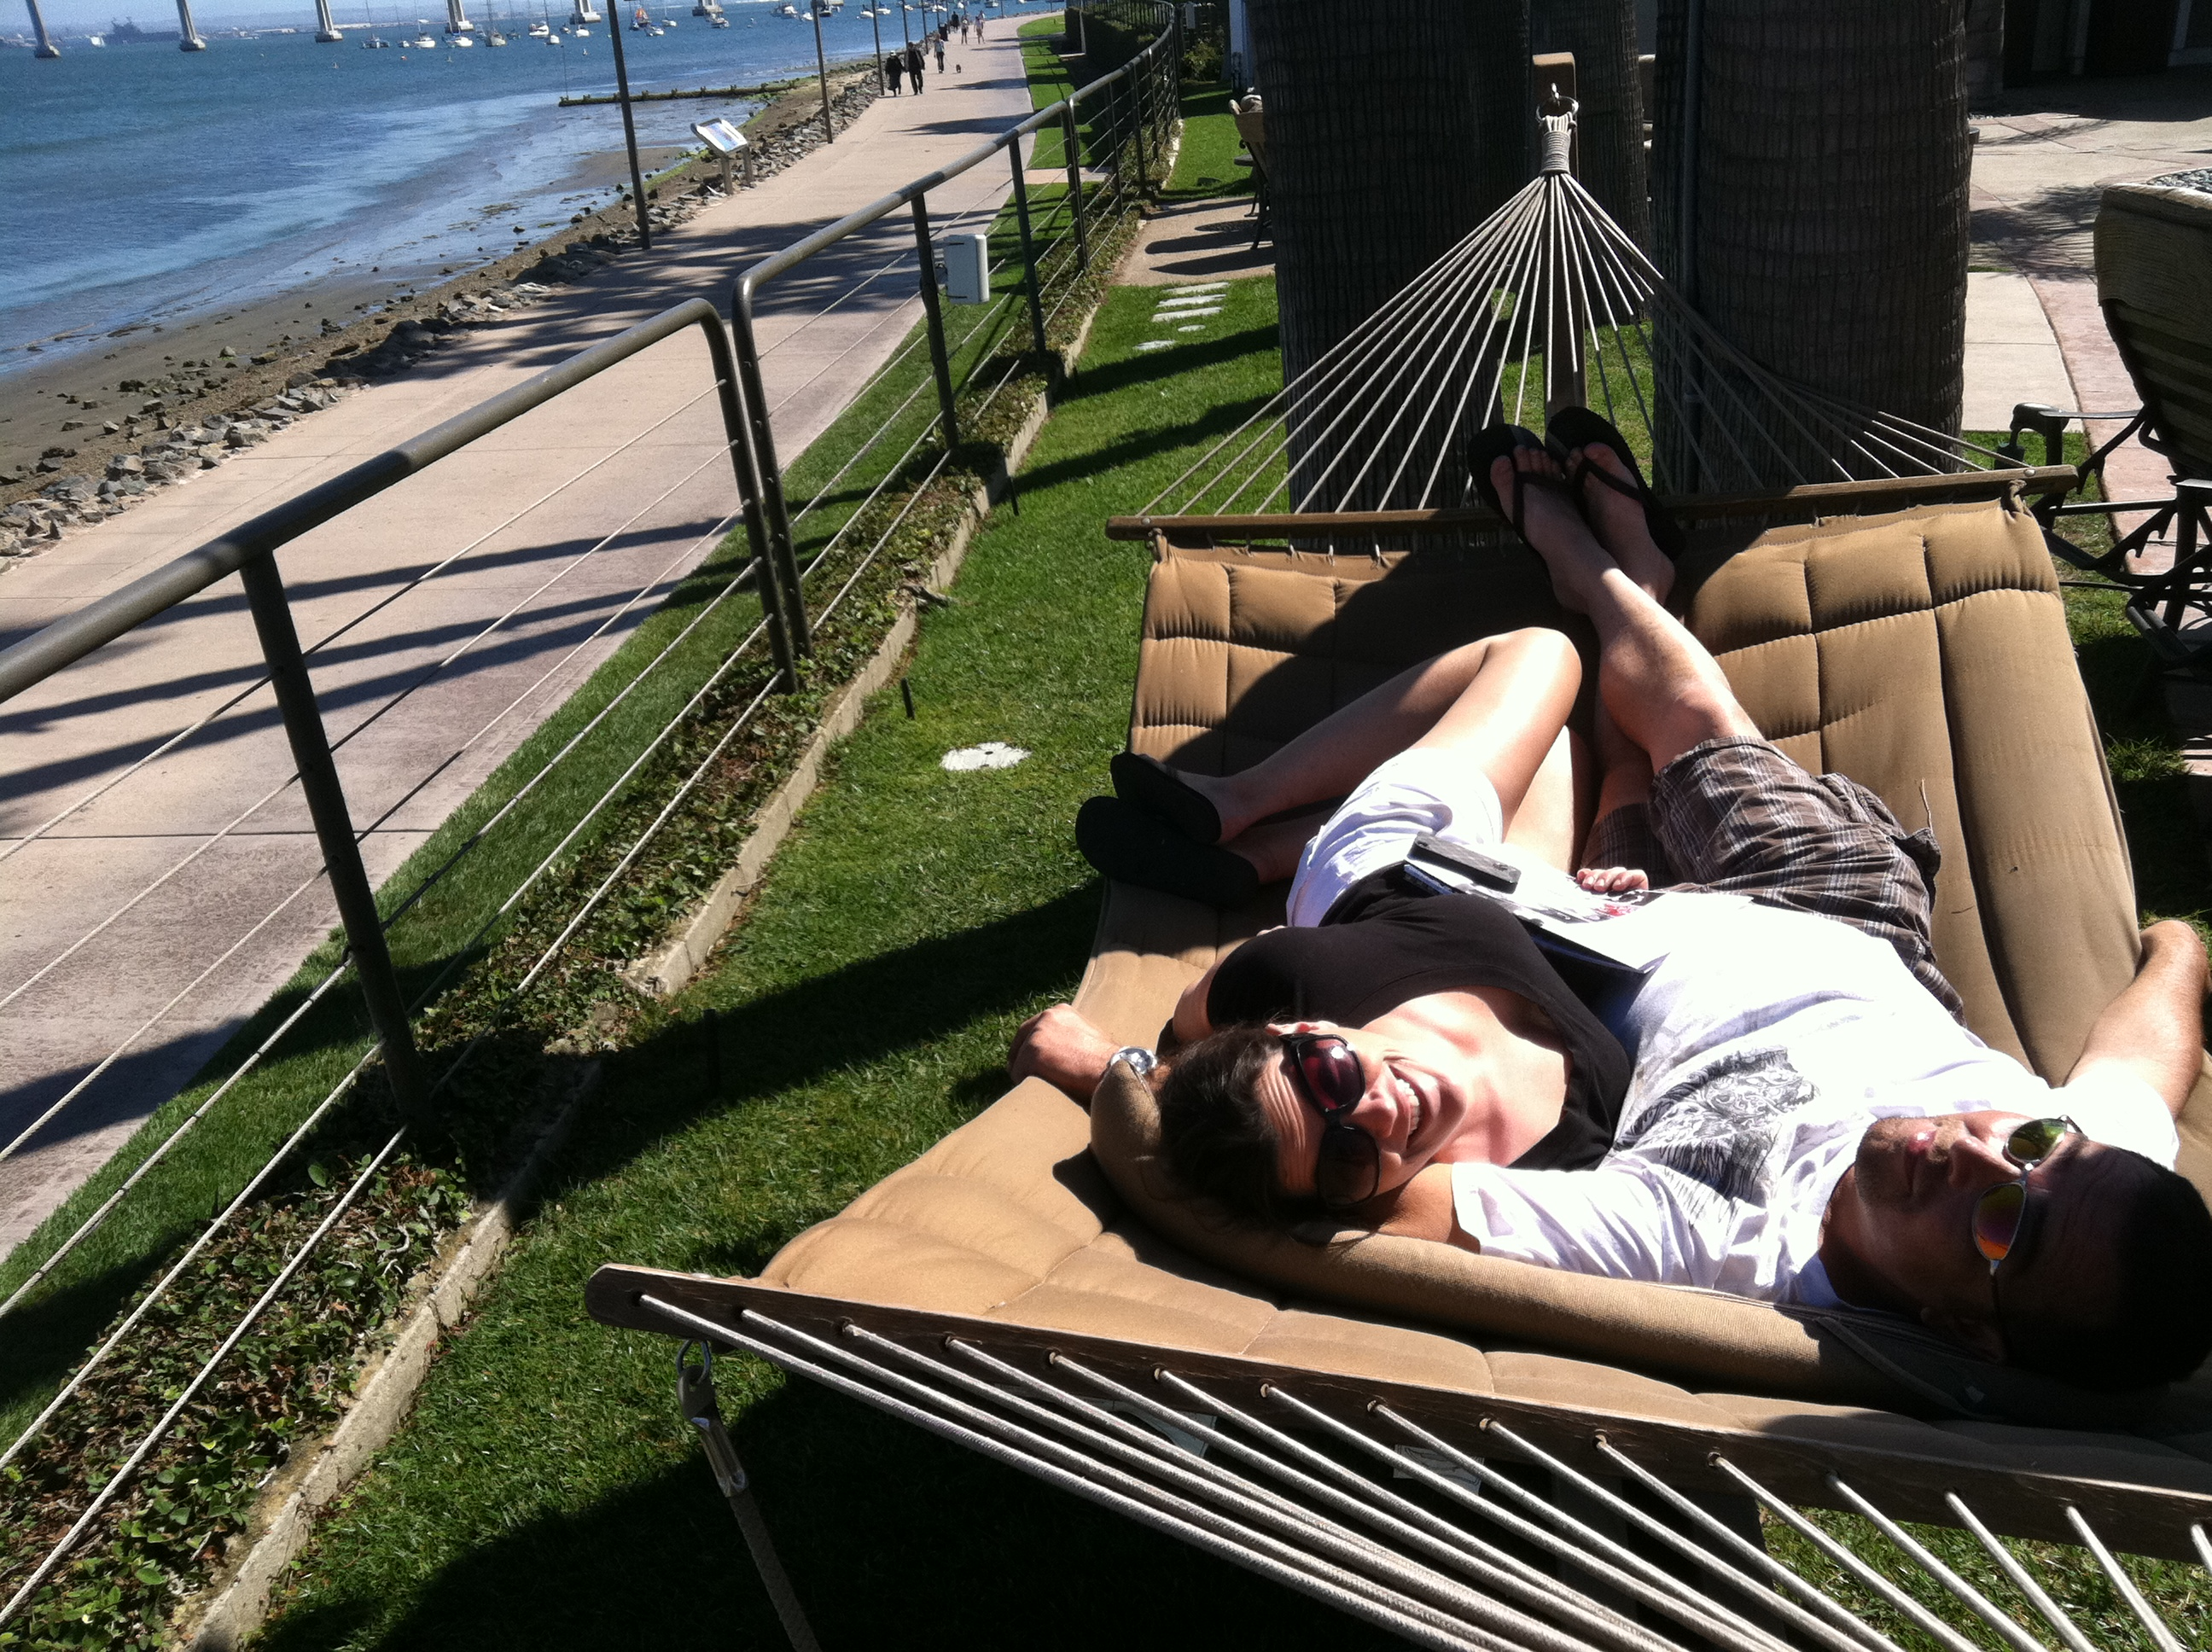 Catching some rays in Coronado Island Marriott's double hammocks.